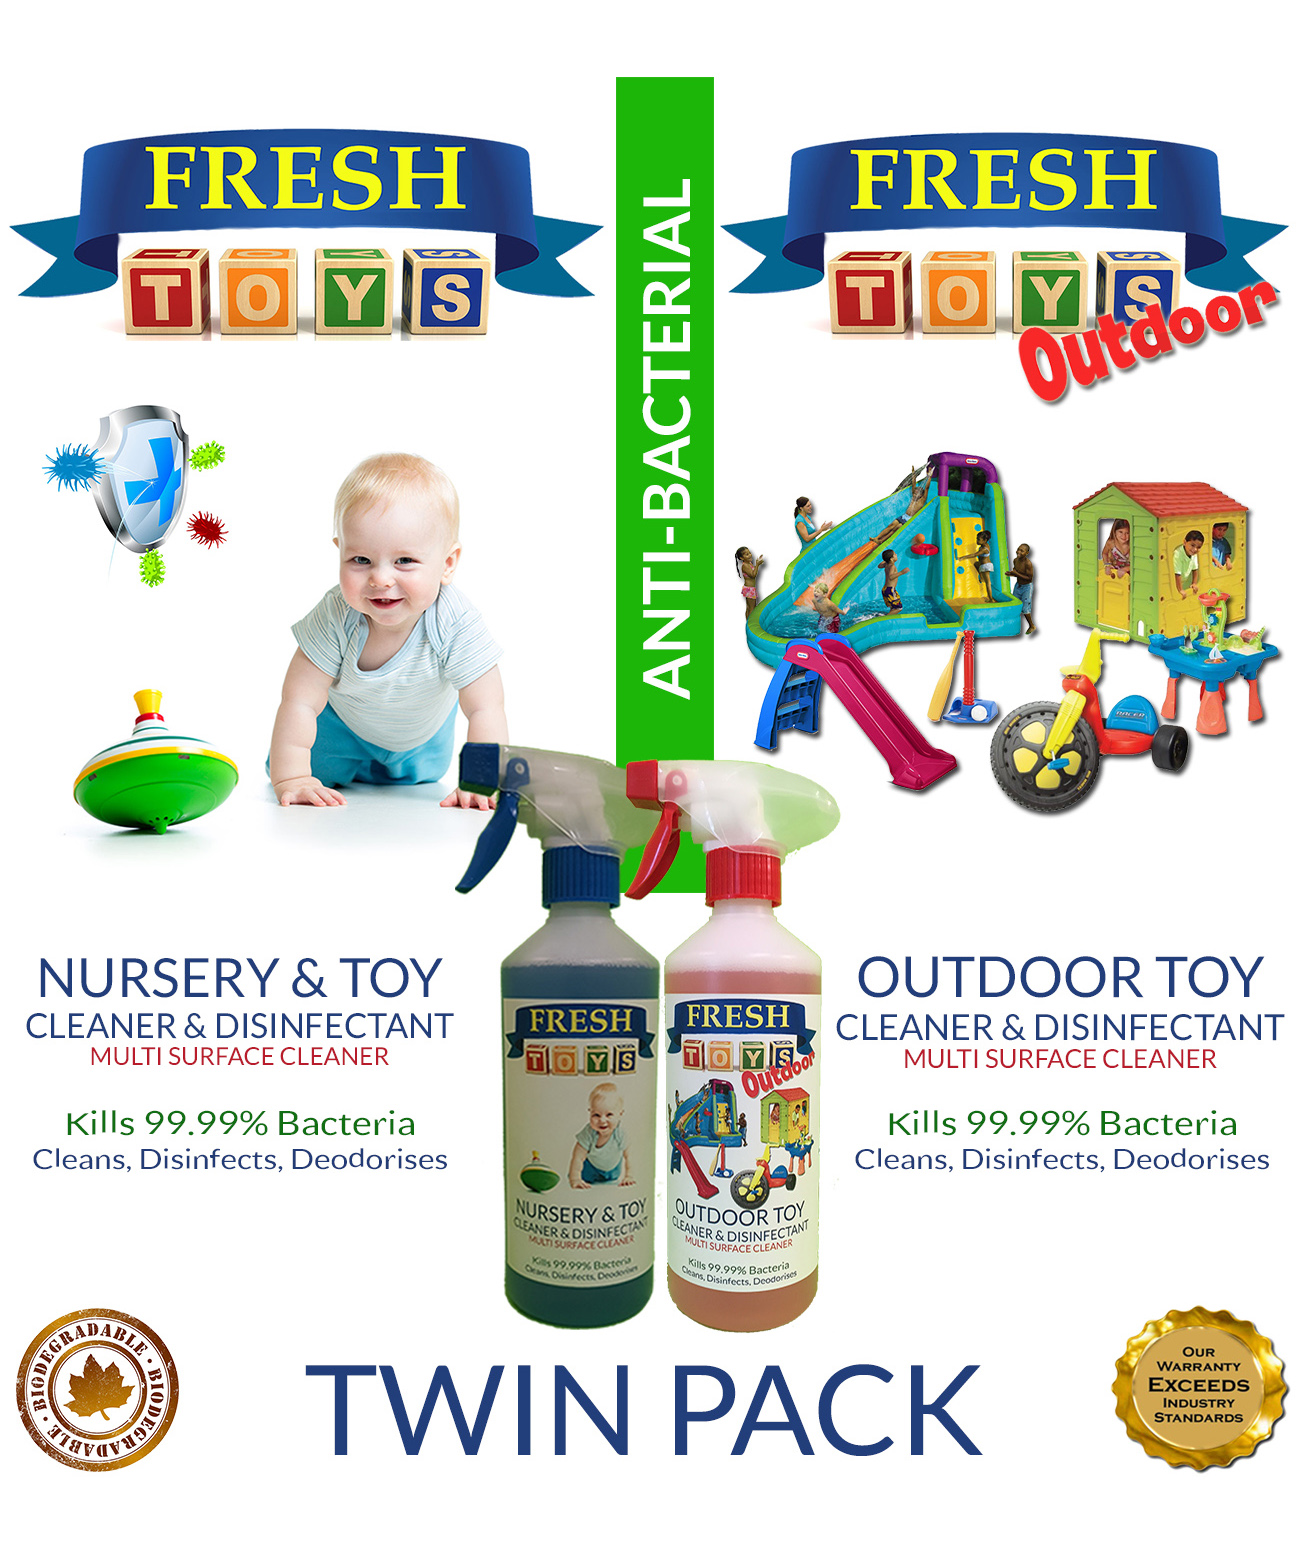 products-TC-TOY-CLEANER-TWIN-PACK-500ML-advert